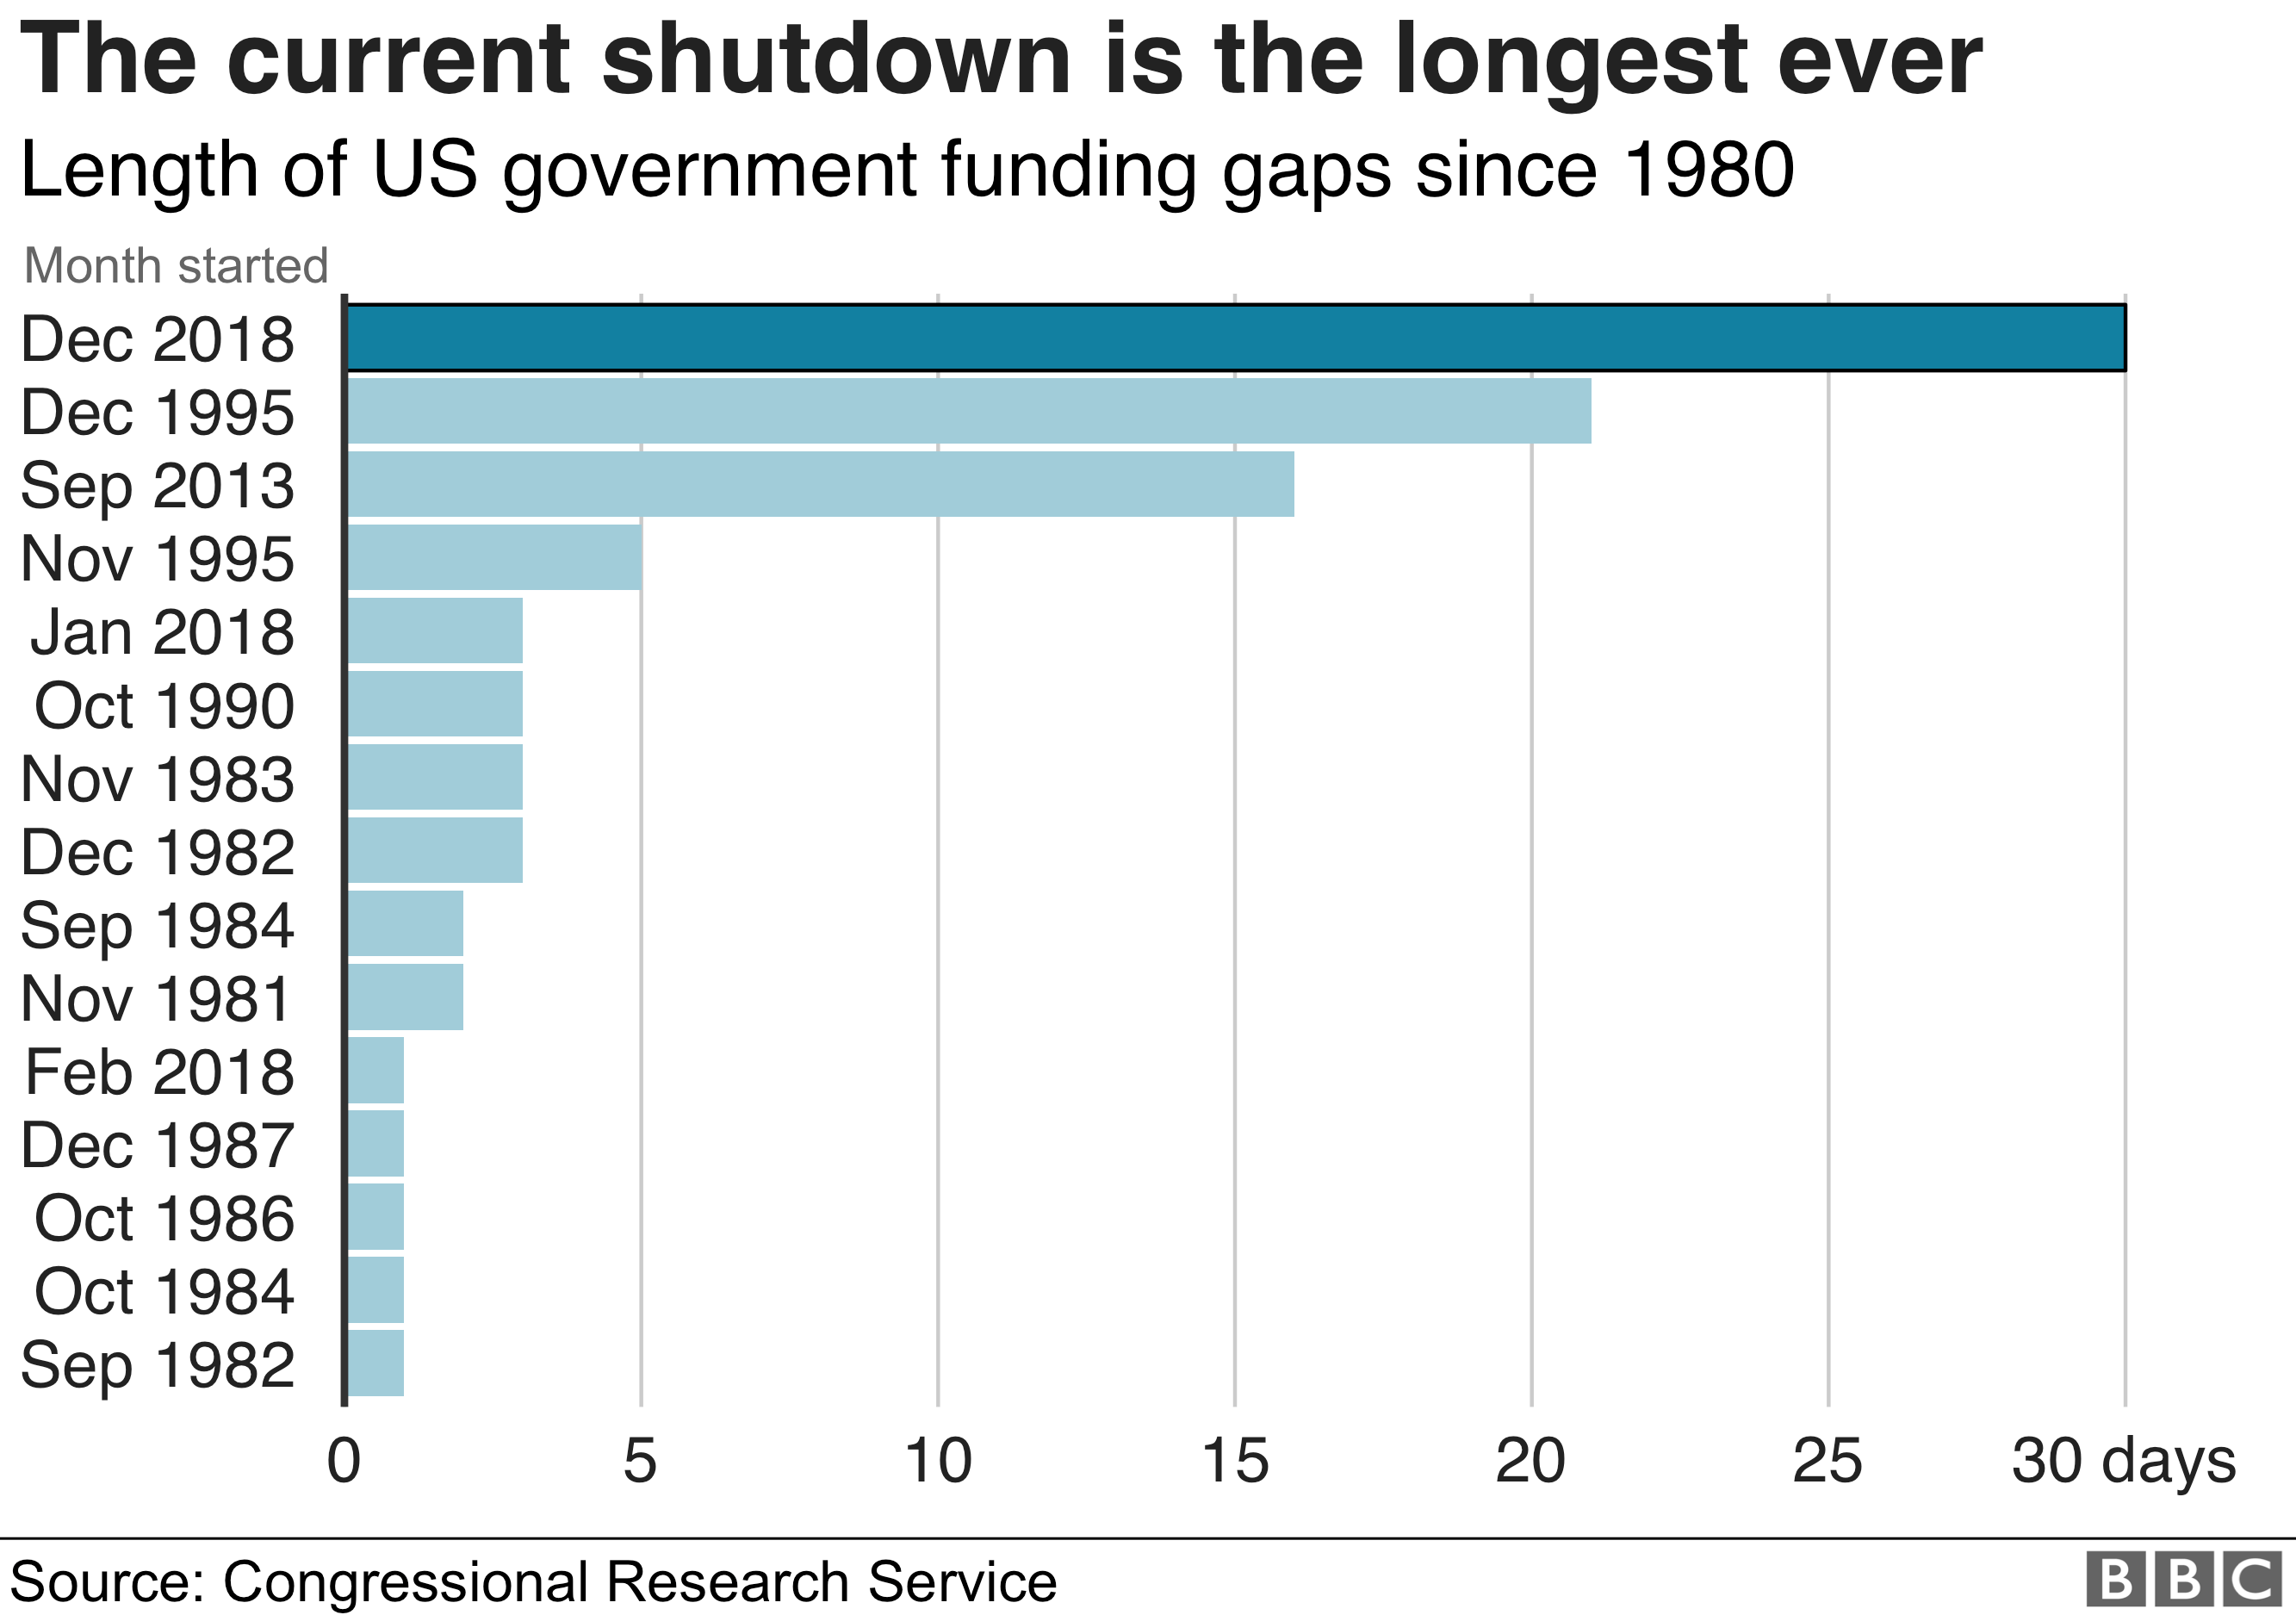 Chart showing length of shutdowns in the US